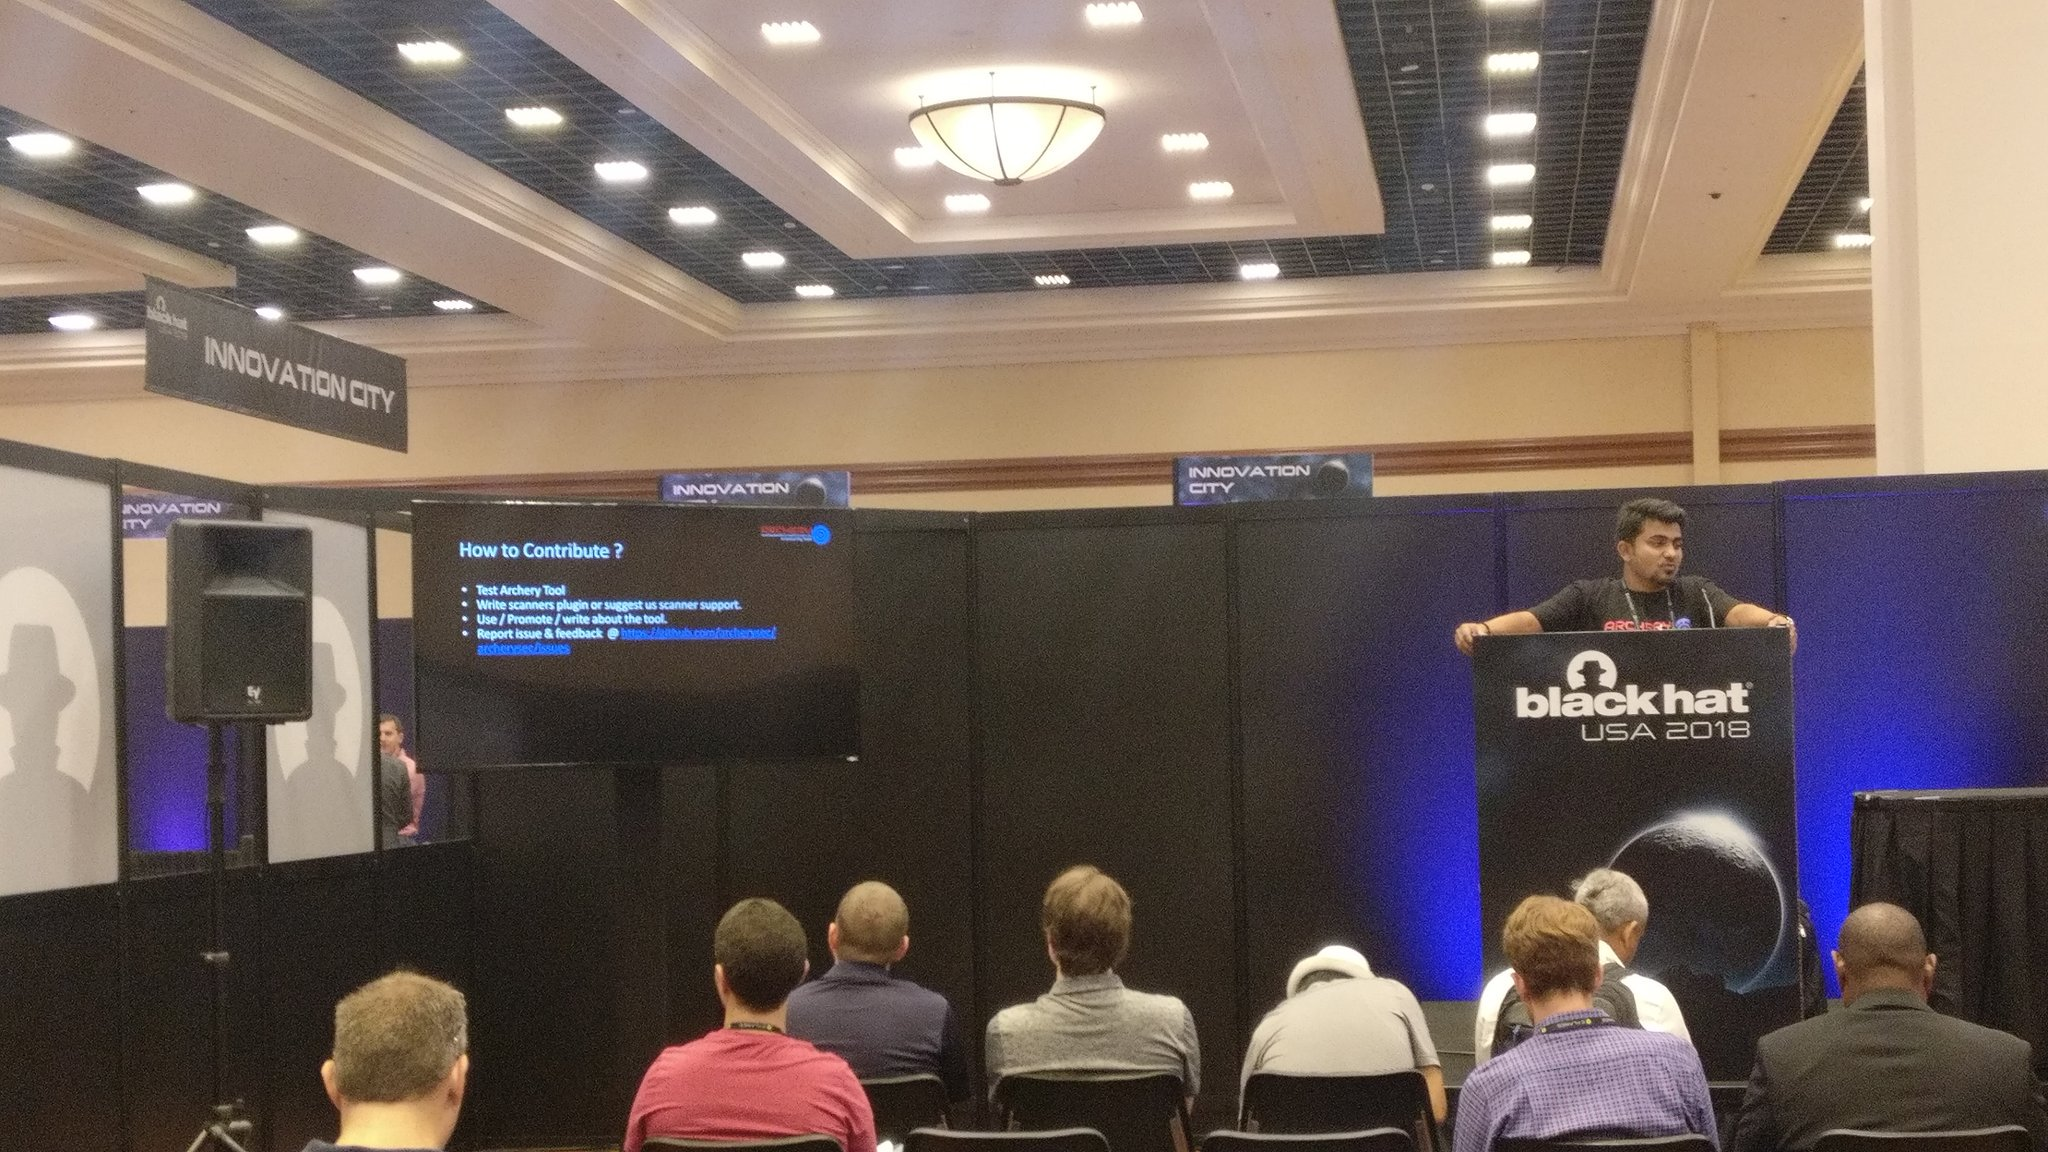 Black Hat Arsenal USA 2018